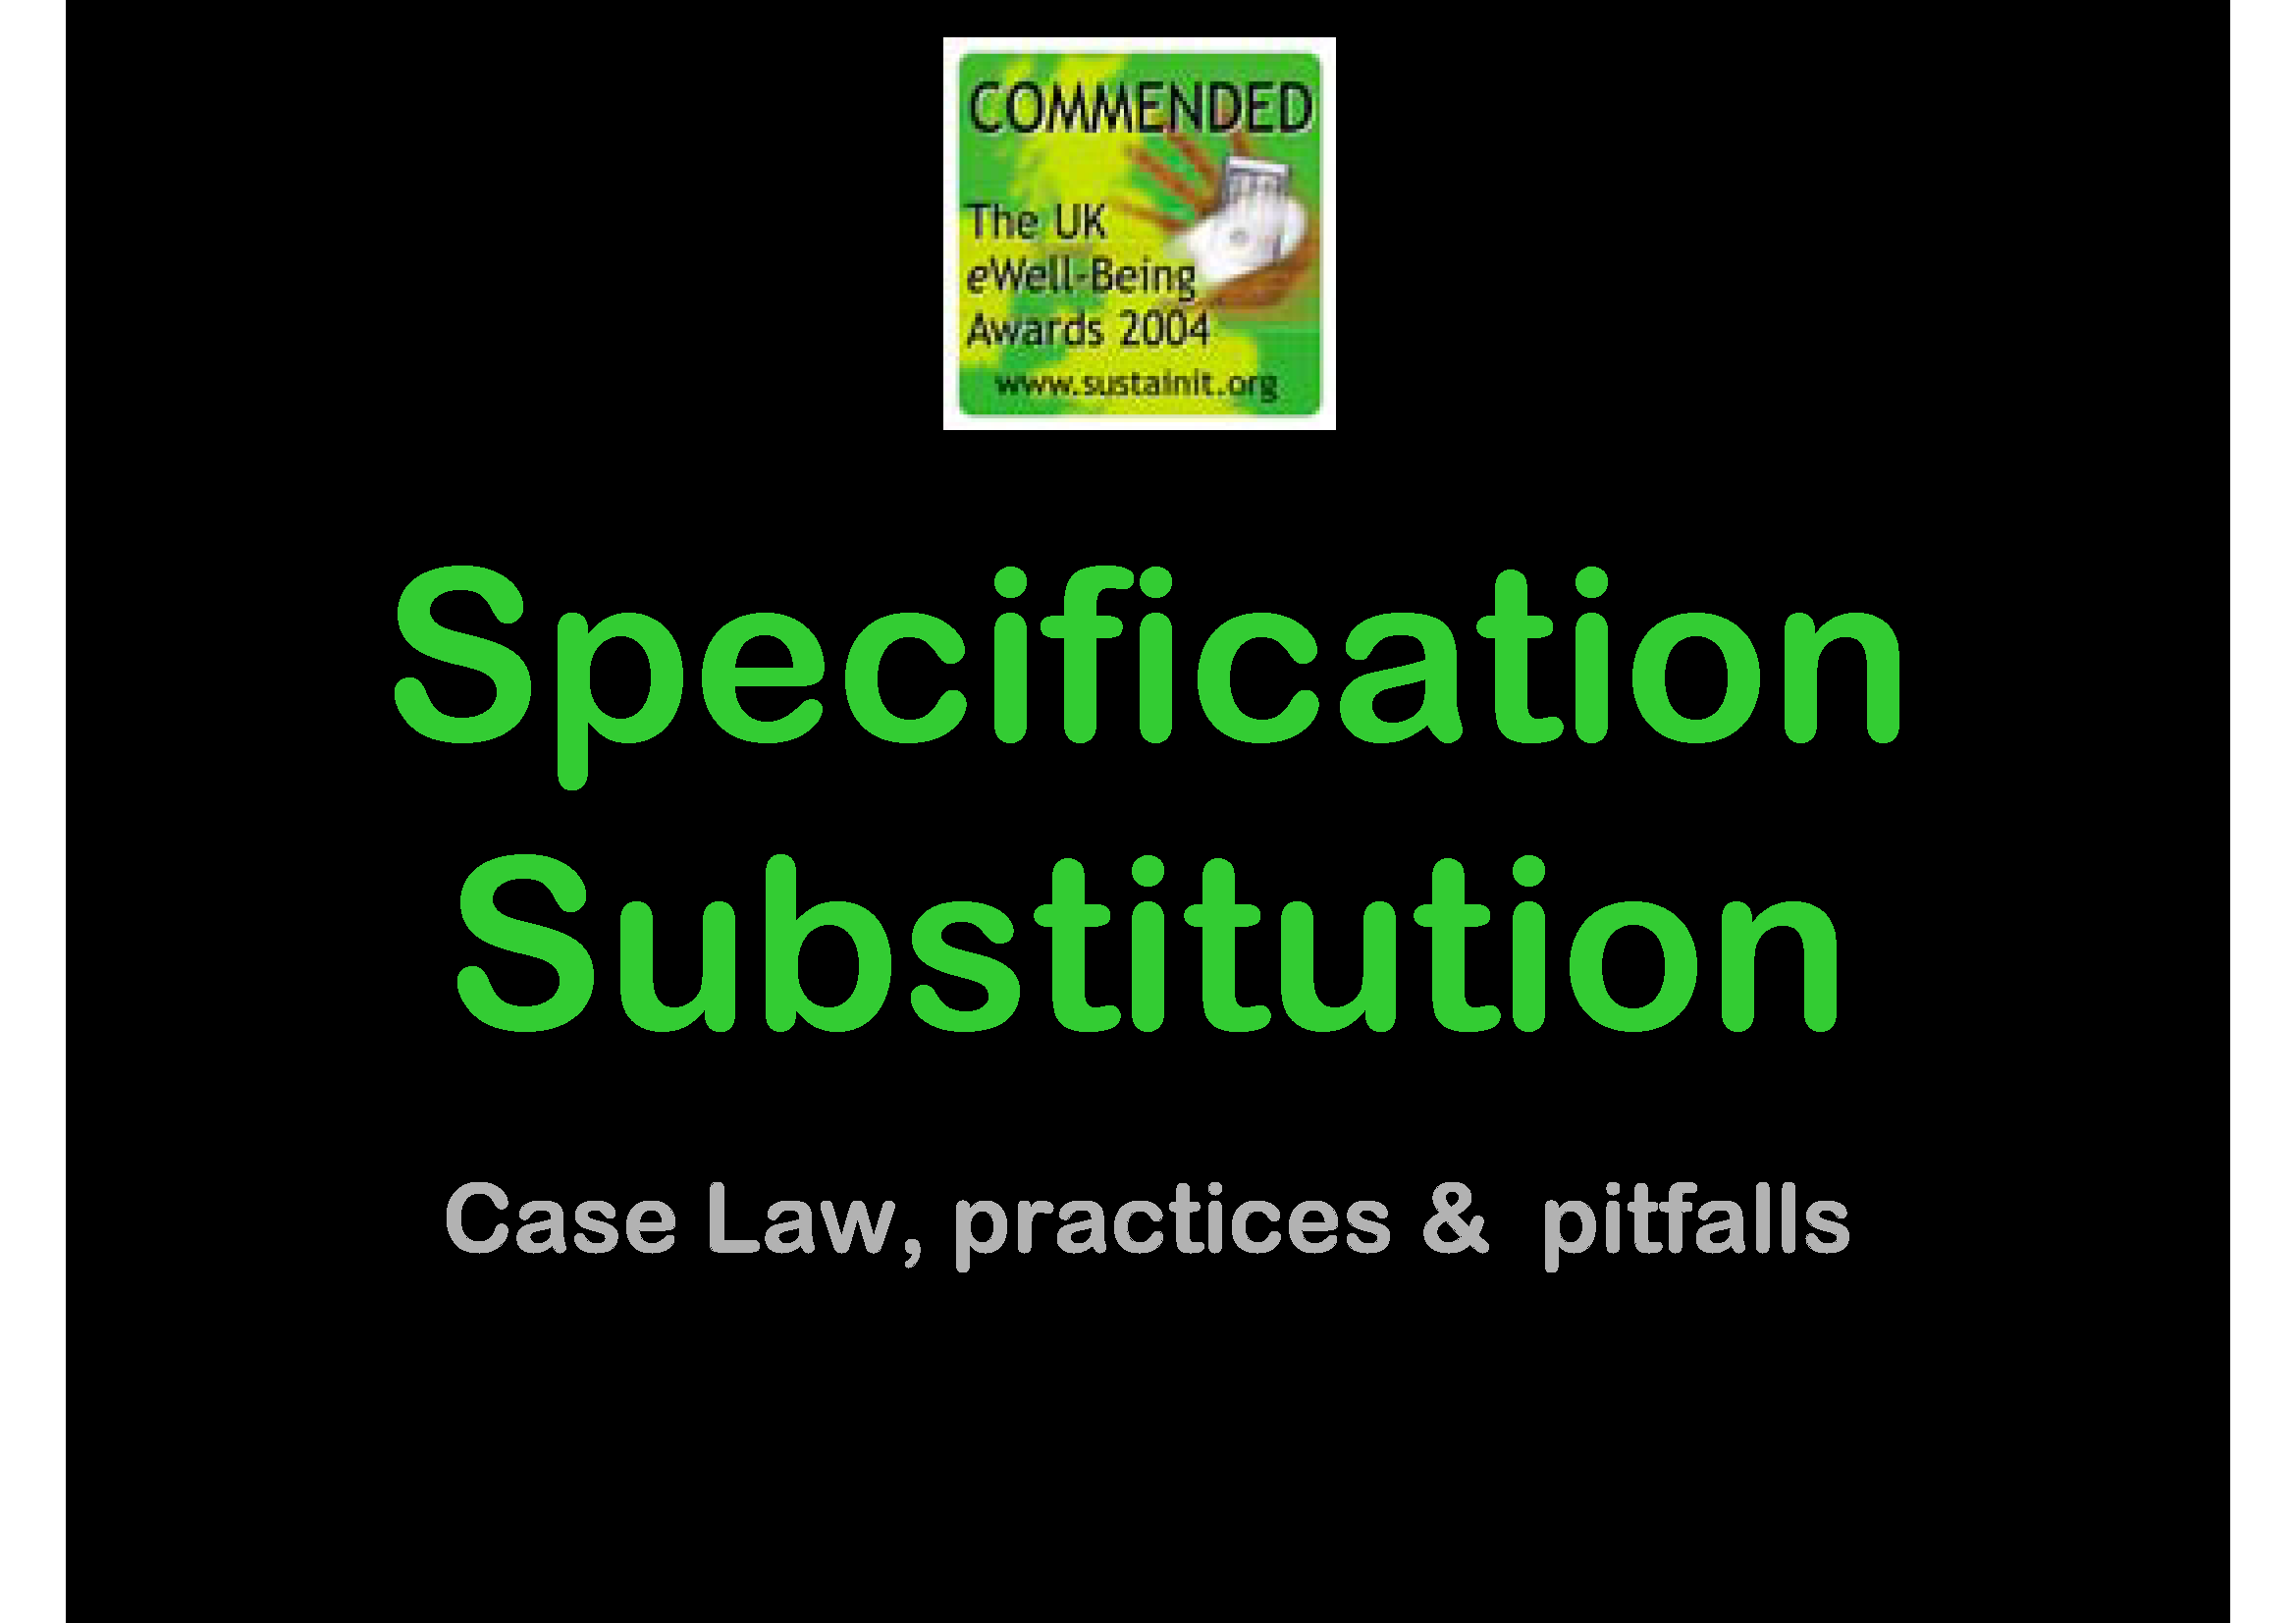 SpecificationSubstitution.png